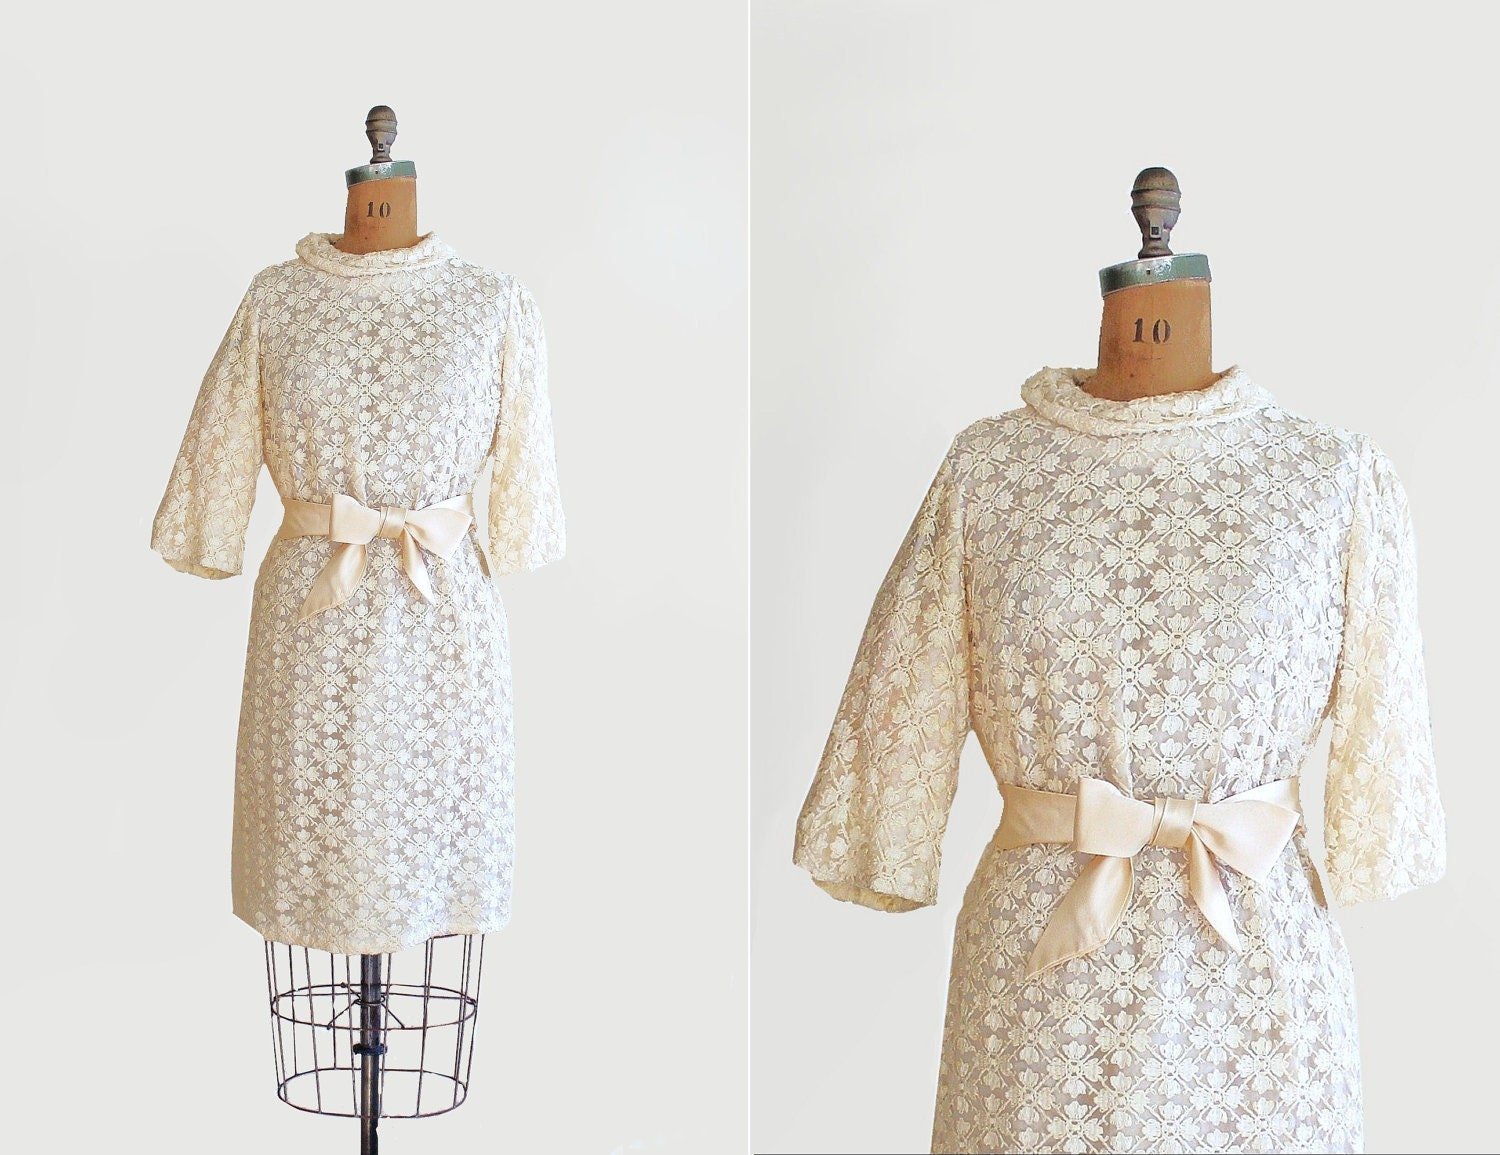 vintage creamy snowflake lace dress with satin bow belt